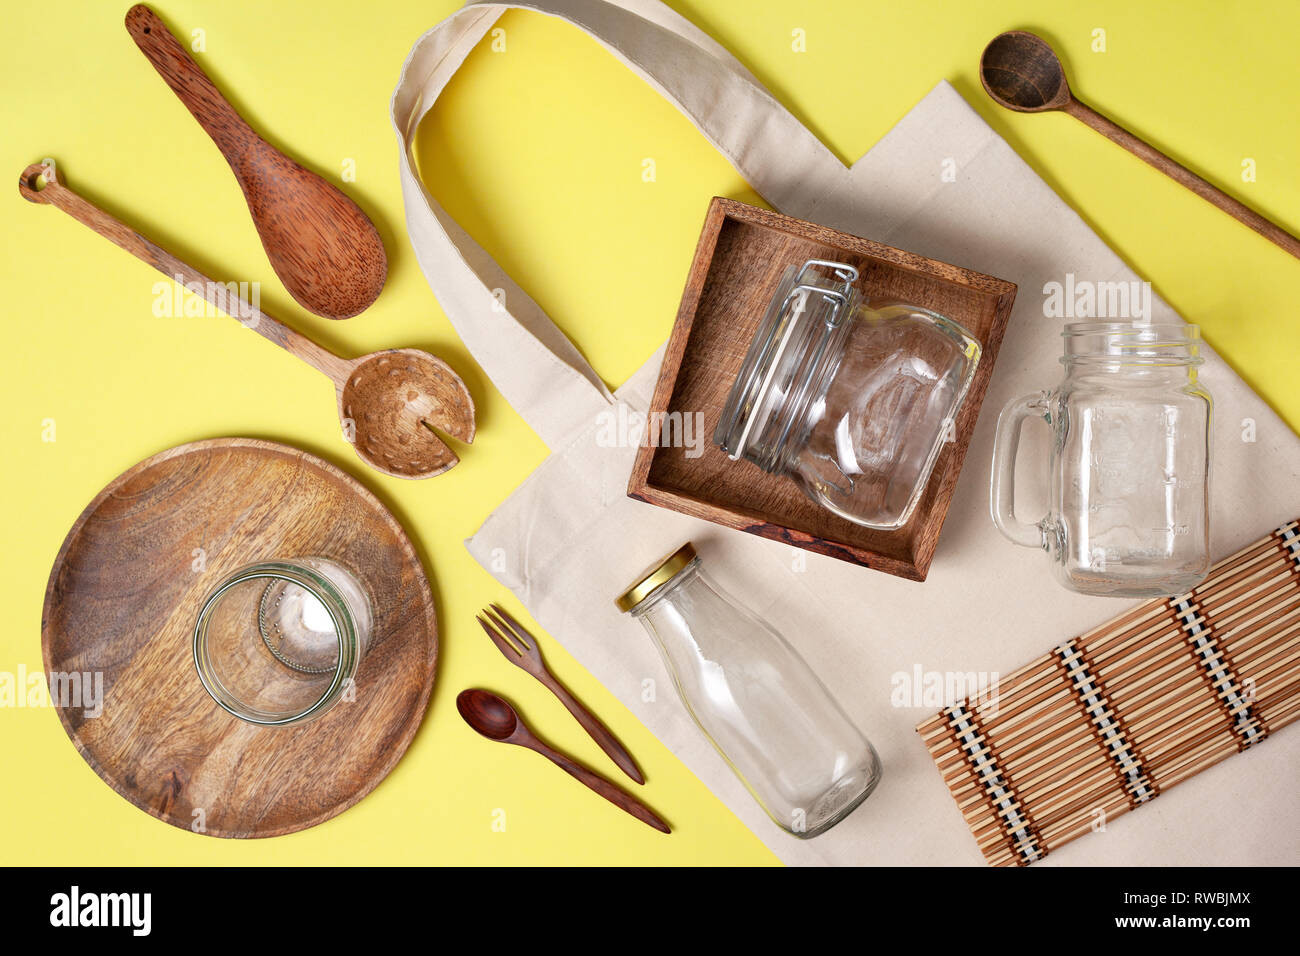 Zero Waste Concept Eco Friendly Kitchen Set For Cooking And Storage Of Products Eco Bag Glass Jars For Storage Wooden Dishes On A Yellow Backgroun Stock Photo Alamy